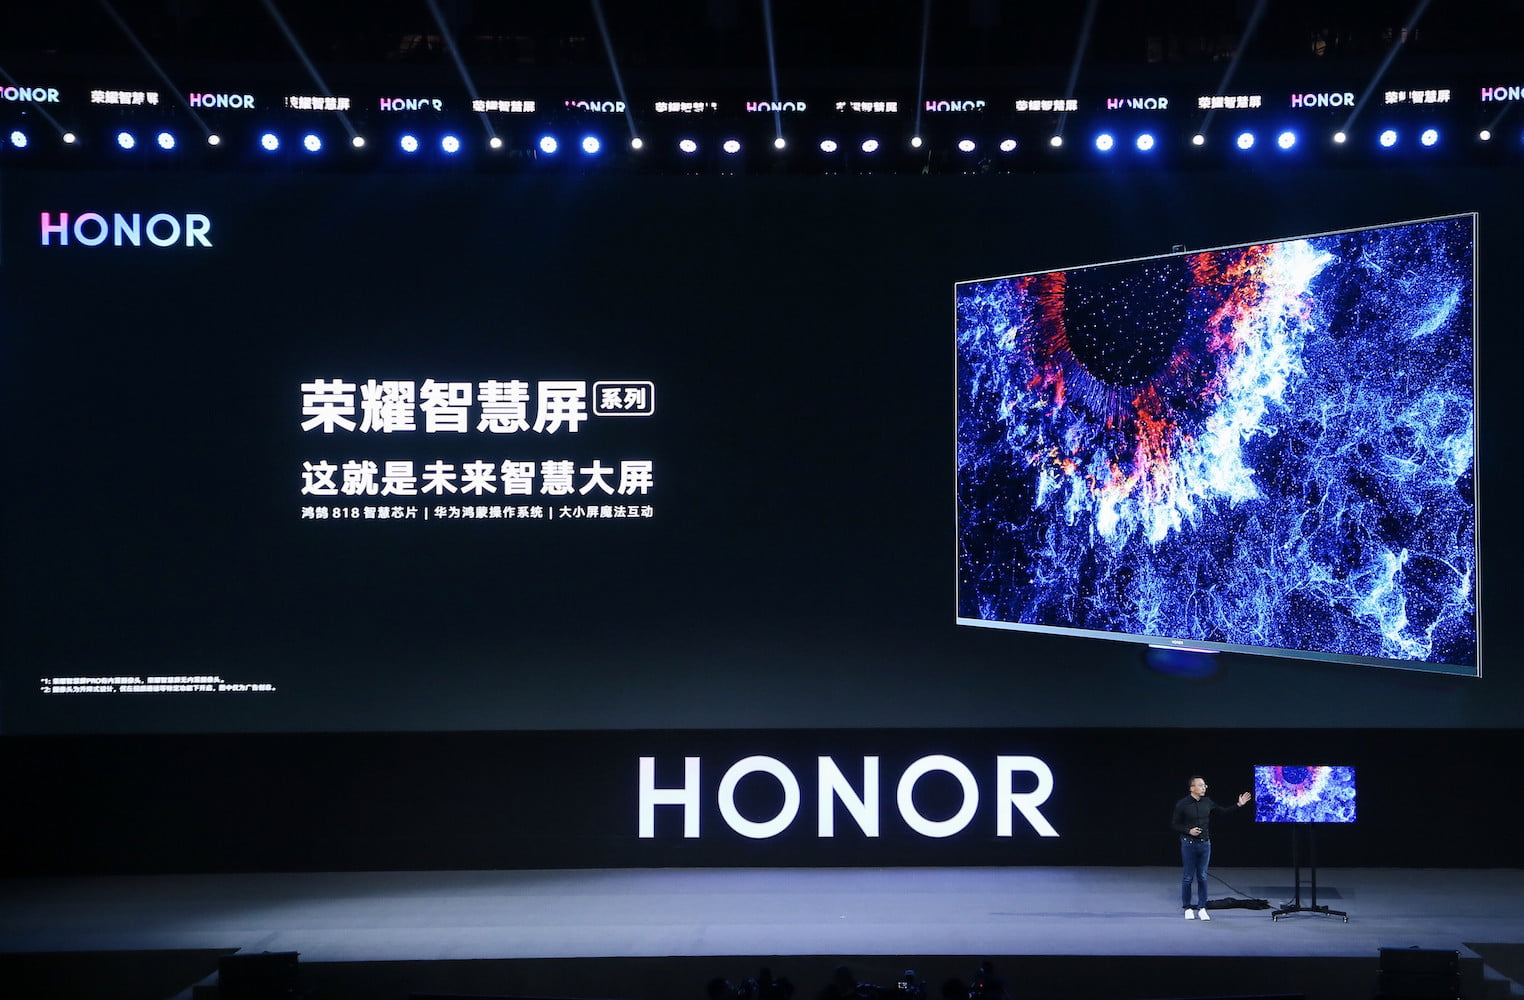 The Honor Vision is More Smartphone than Smart TV | Digital Trends